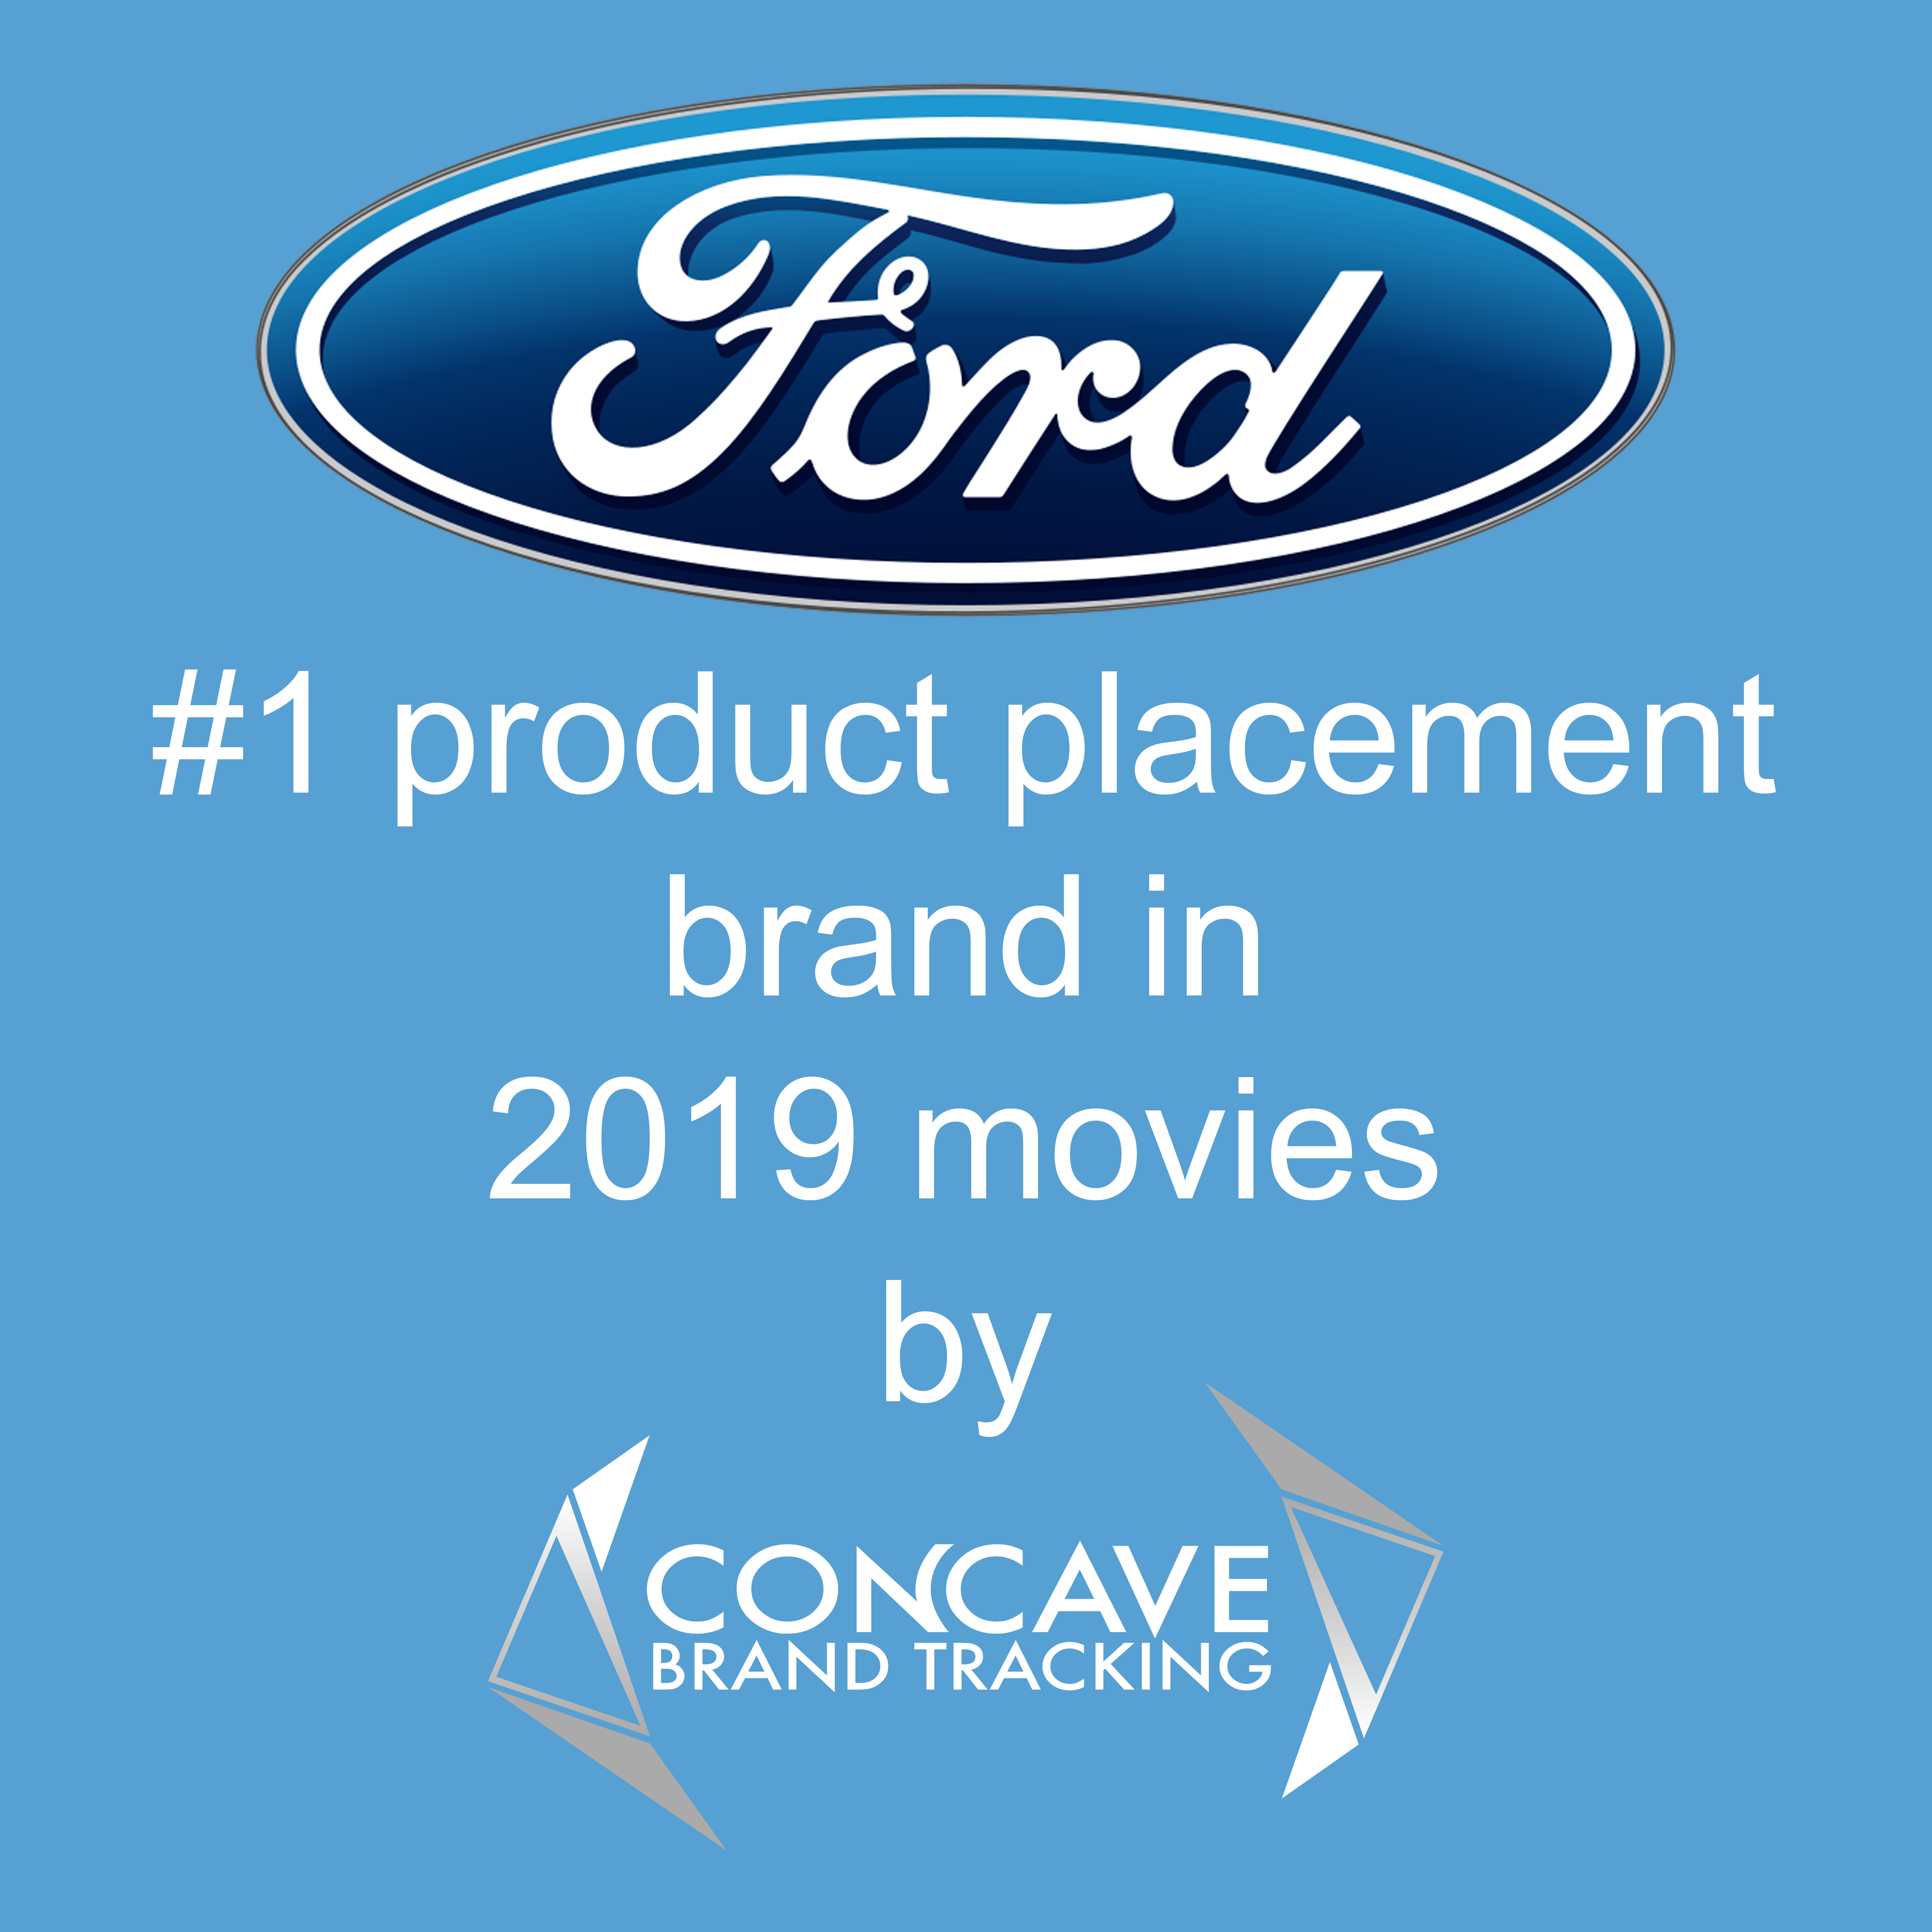 Ford #1 product placement brand in 2019 movies